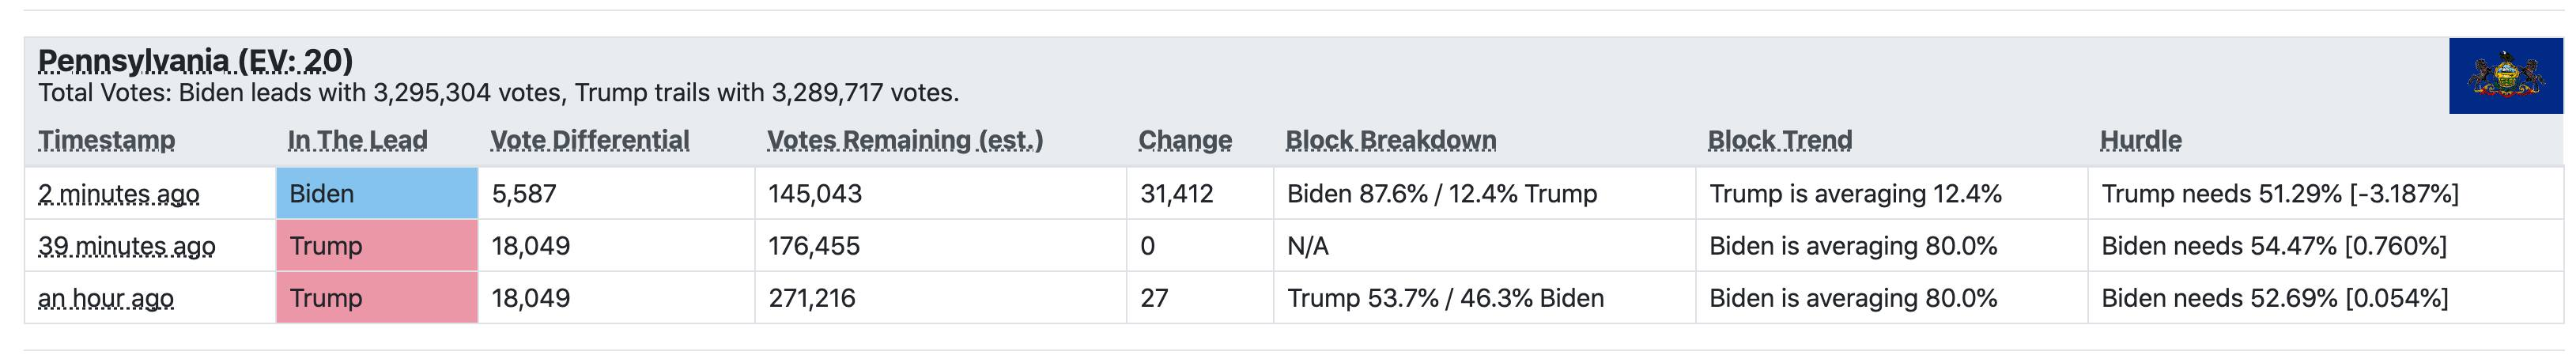 The long-anticipated lead for Biden in Pennsylvania finally happens: